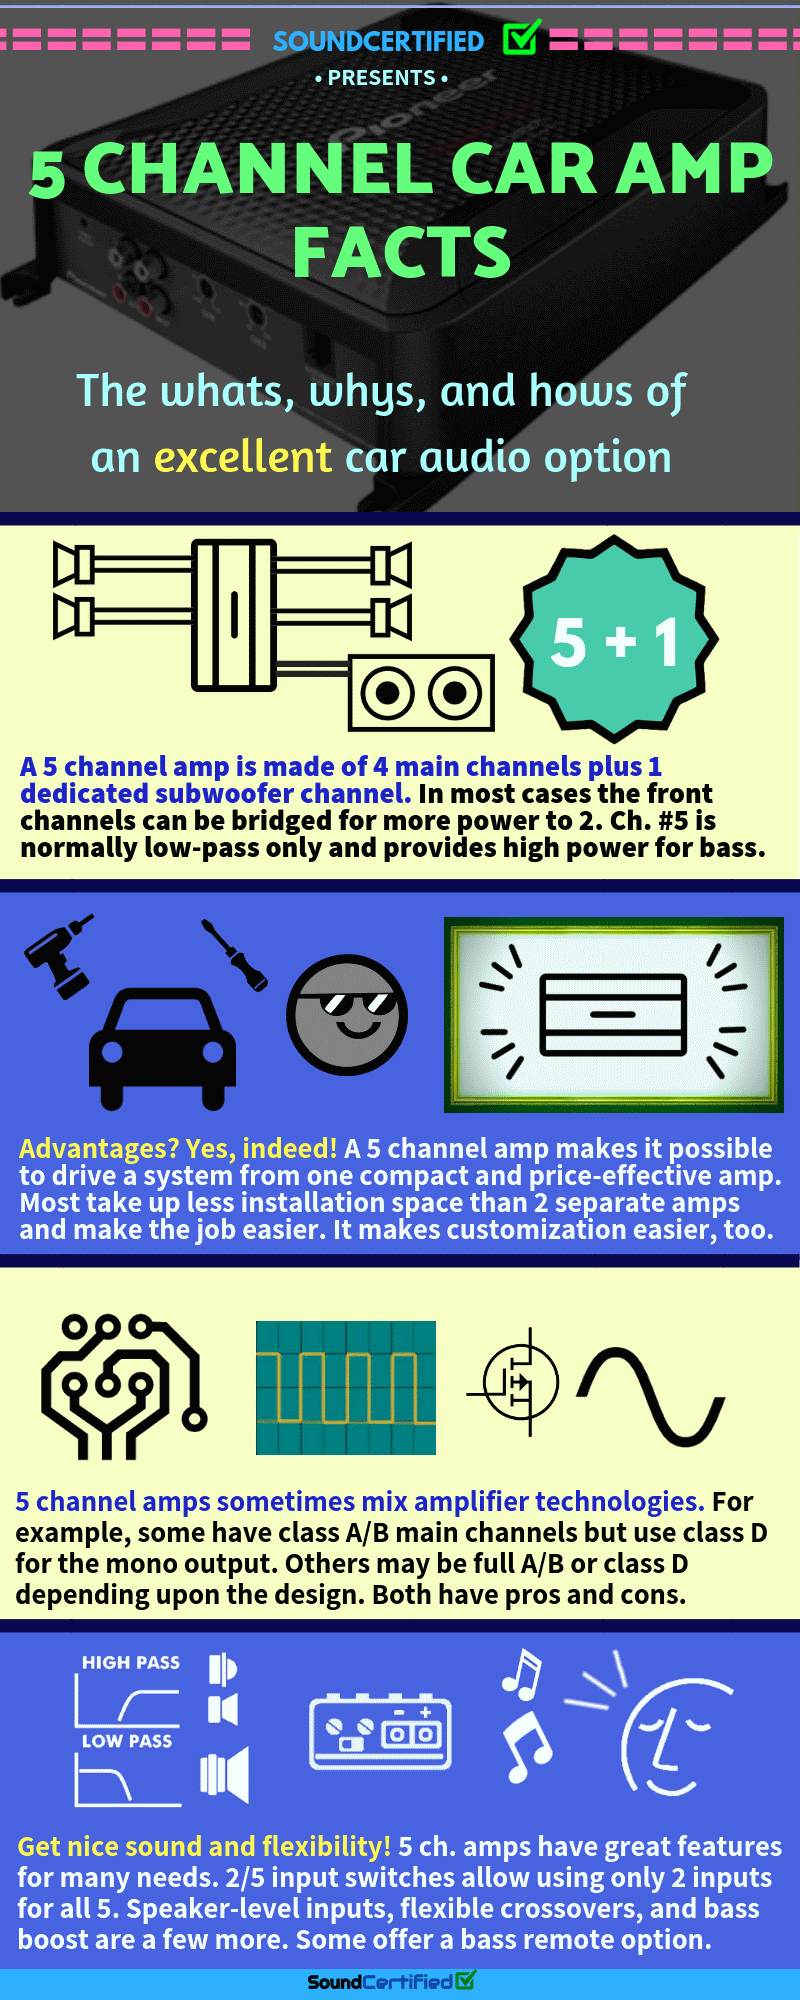 5 channel car amplifier facts infographic